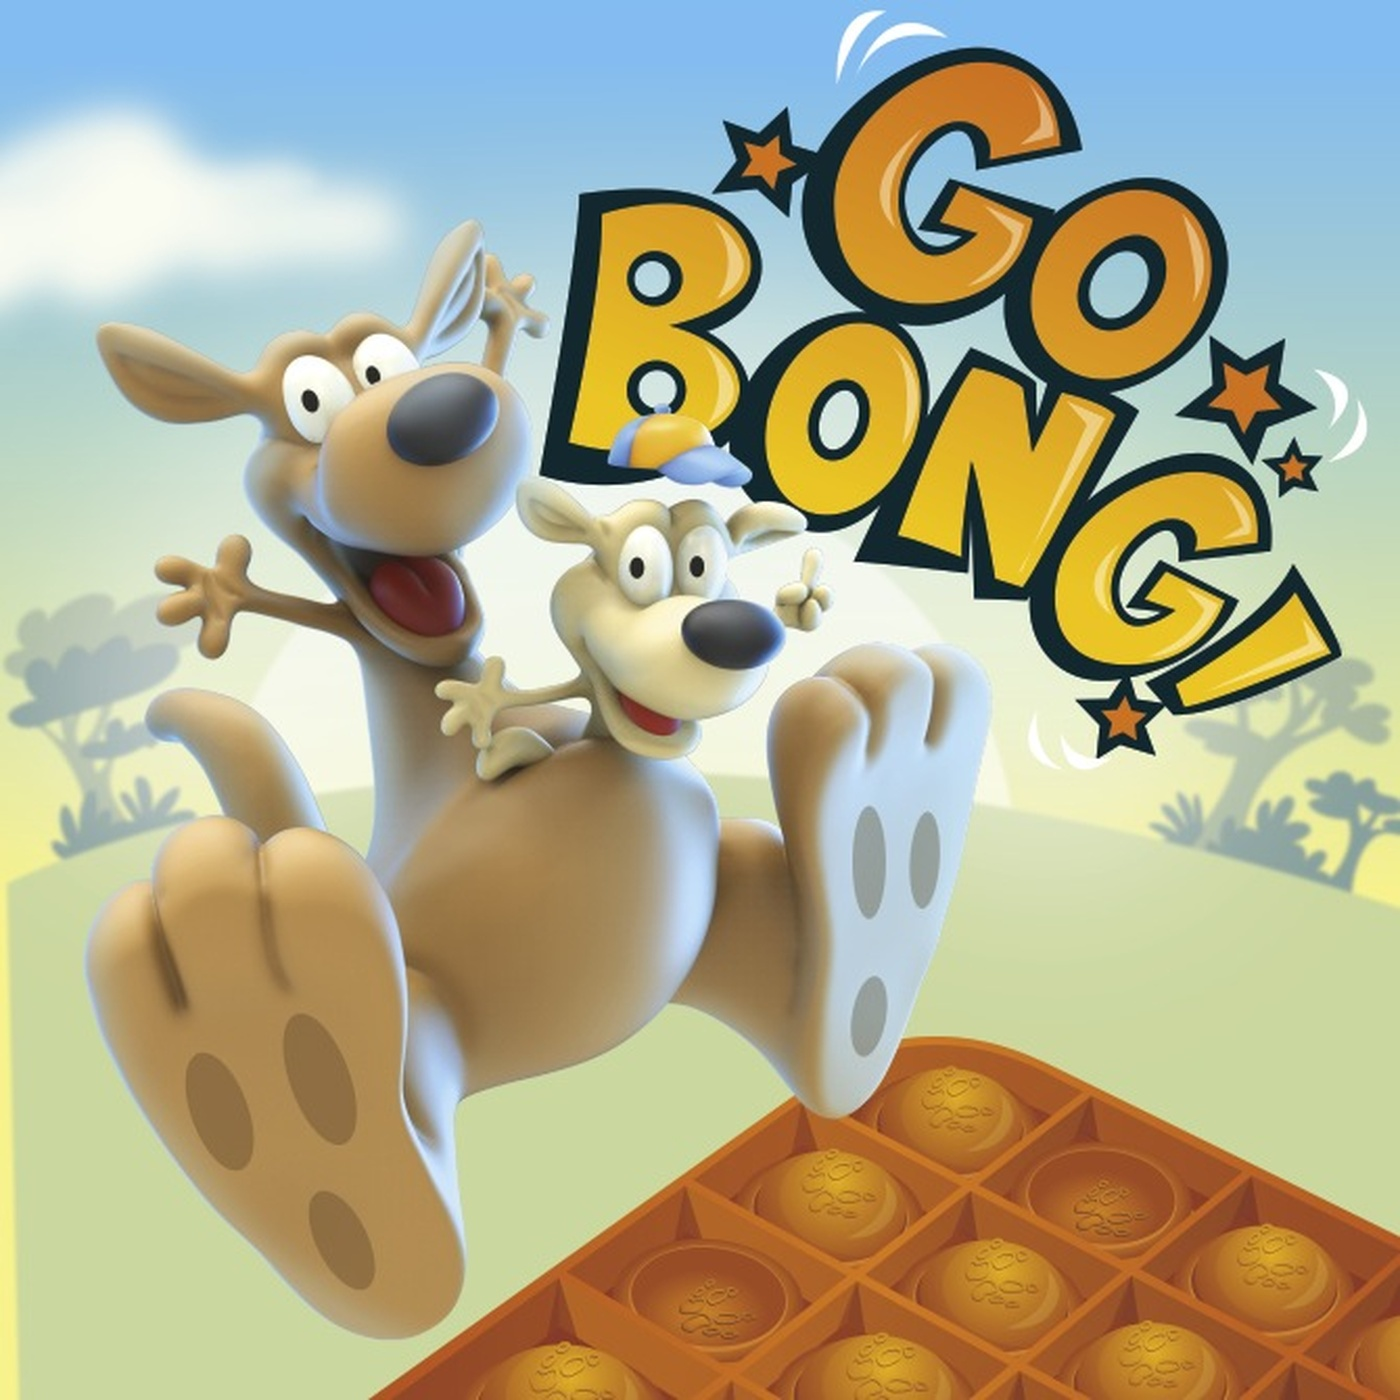 Francois Boutet - 3D illustration- Go Bong boardgame